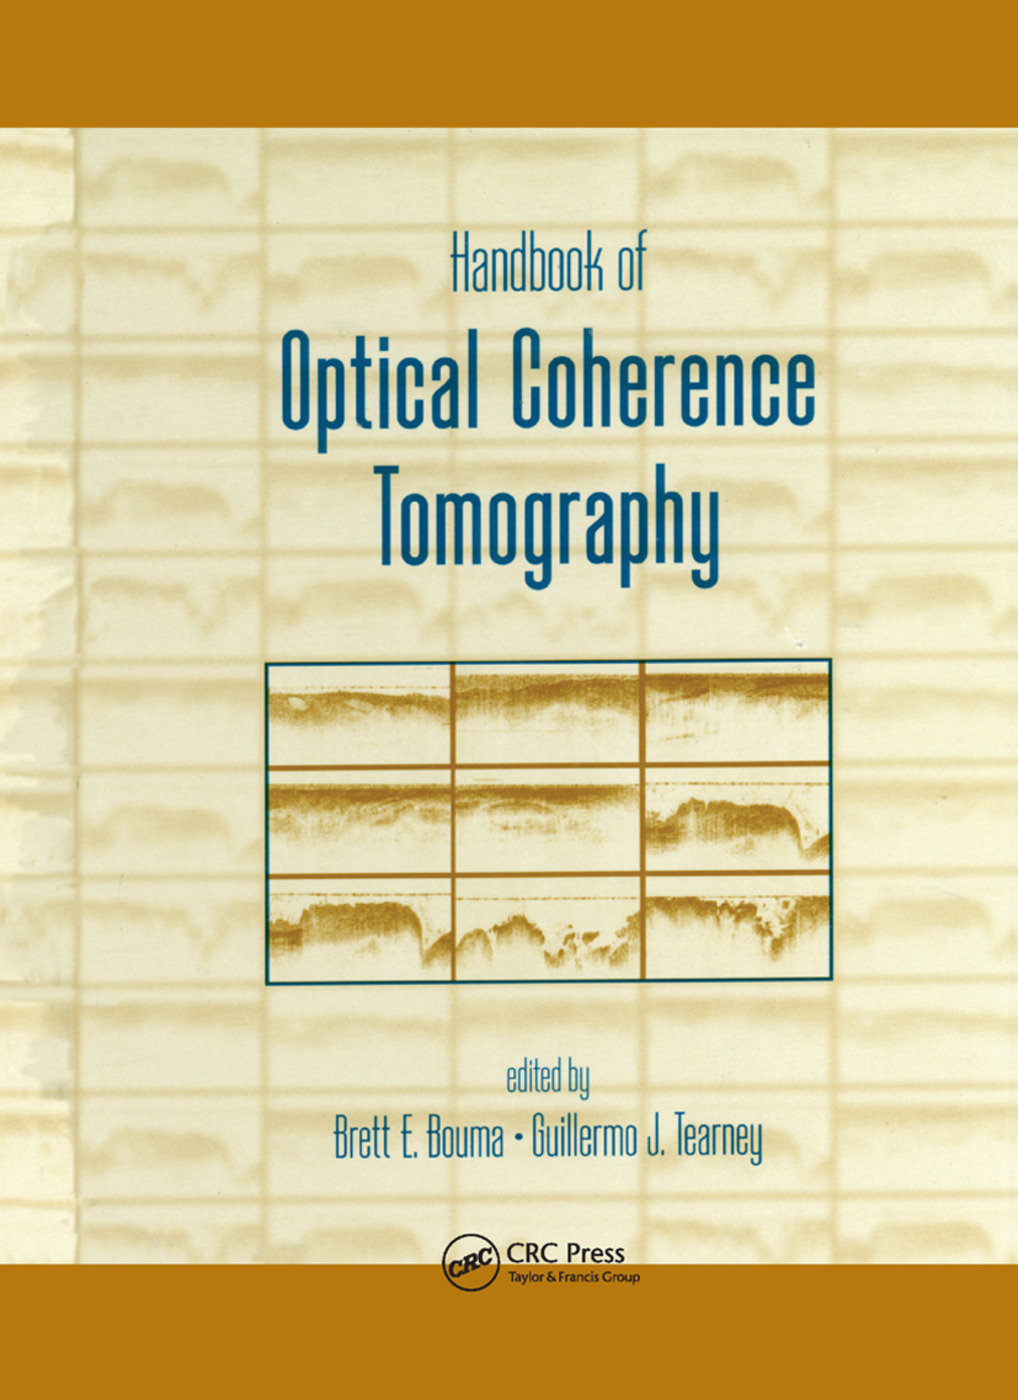 Handbook of Optical Coherence Tomography: 1st Edition (Paperback) book cover